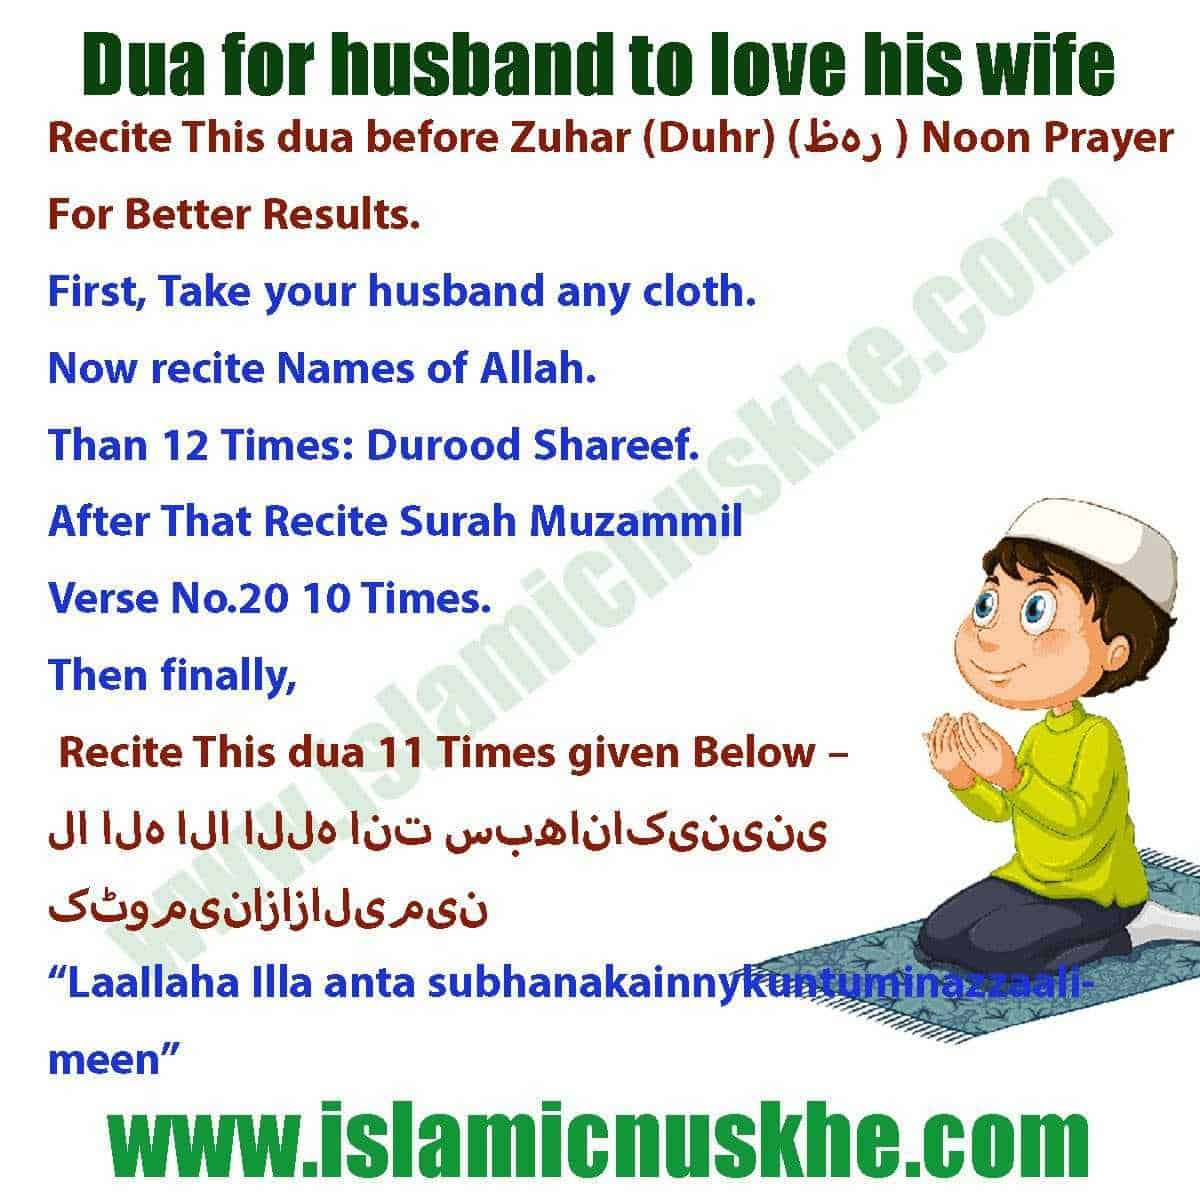 Here is Dua for husband to love his wife only Step by Step -